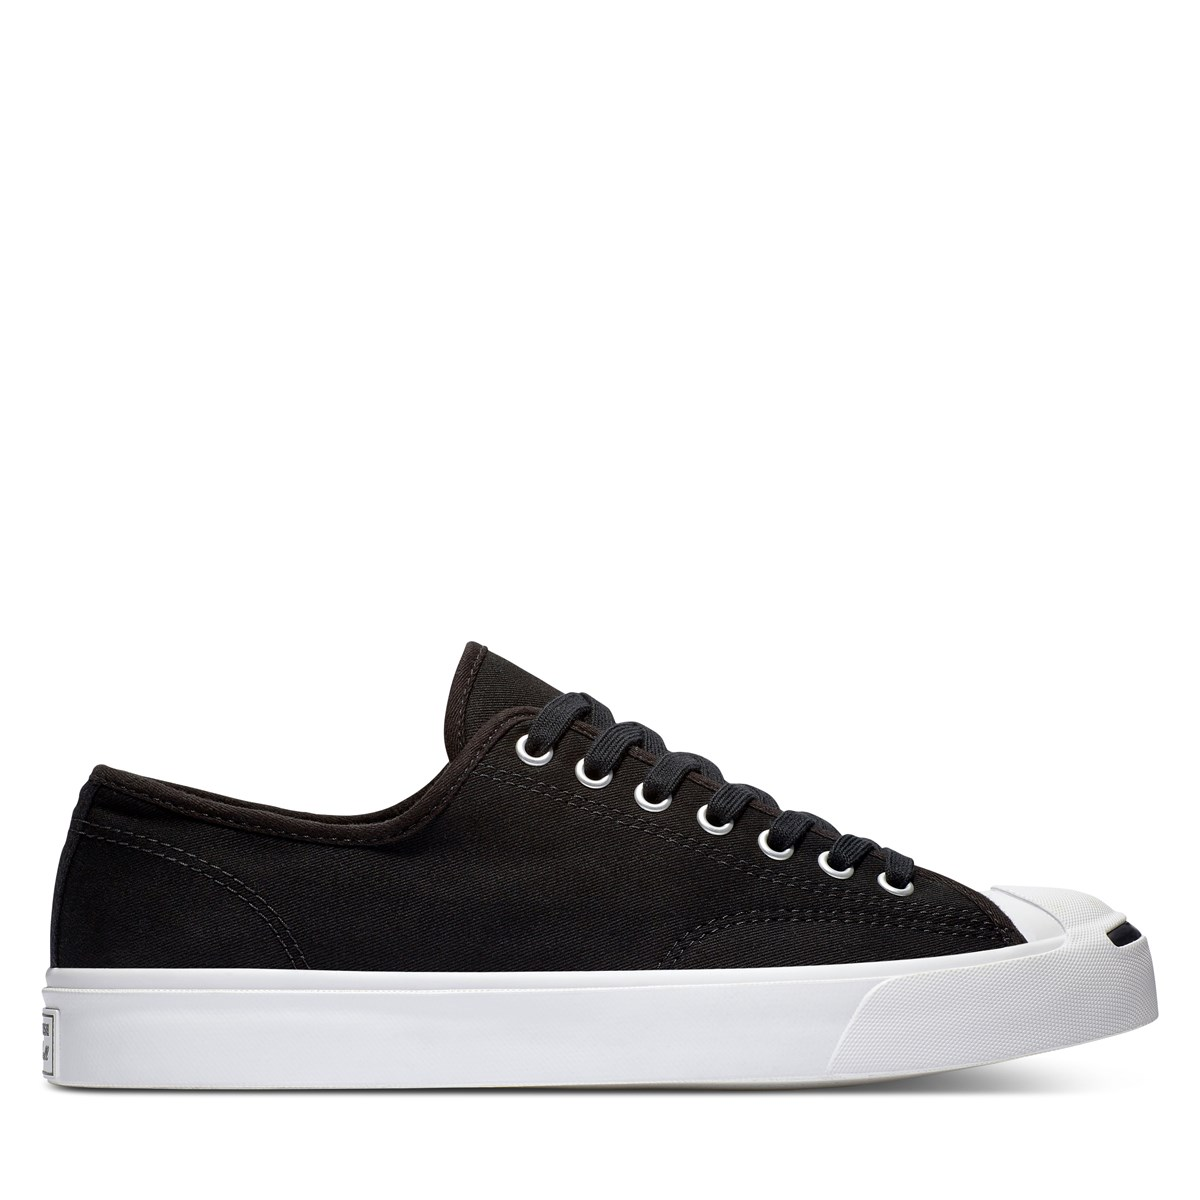 Men's Jack Purcell Sneakers in Black